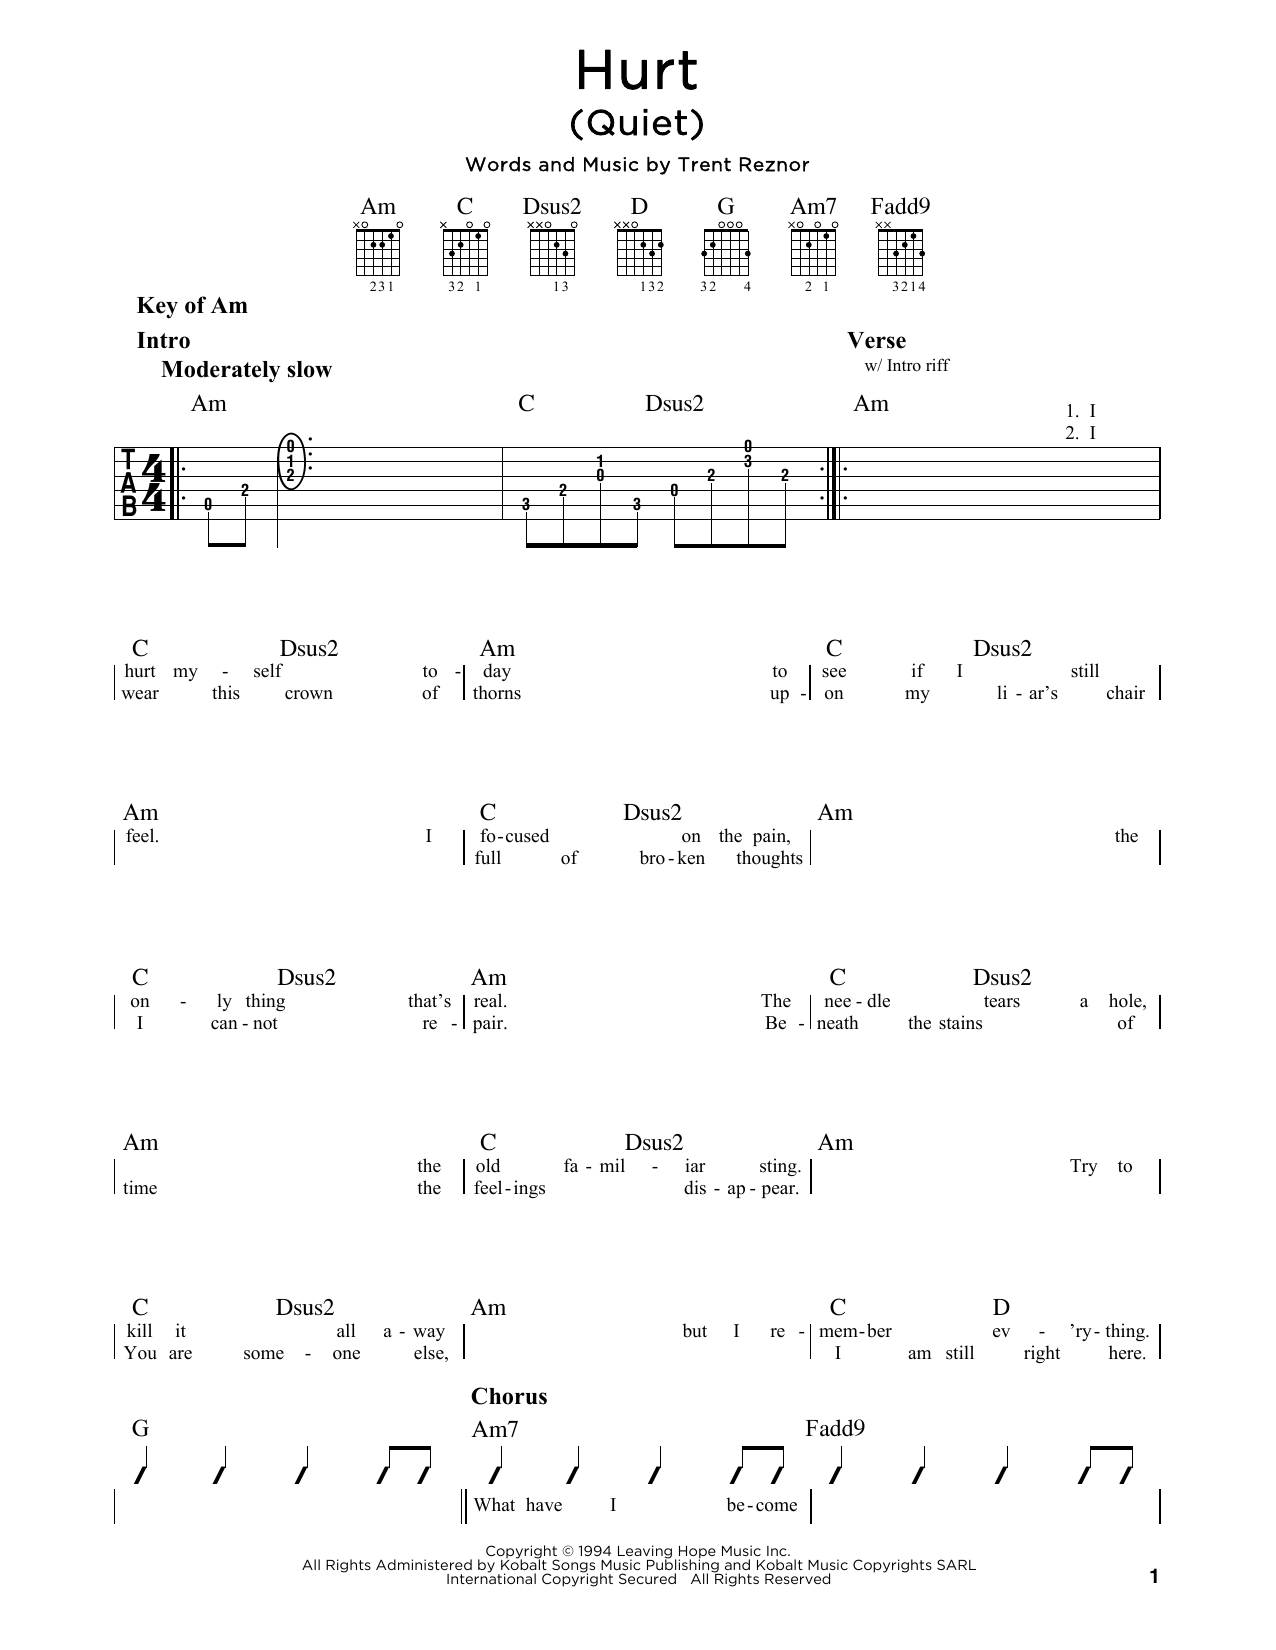 Johnny Cash 'Hurt (Quiet)' Sheet Music Notes, Chords | Download Printable  Guitar Lead Sheet - SKU: 171503